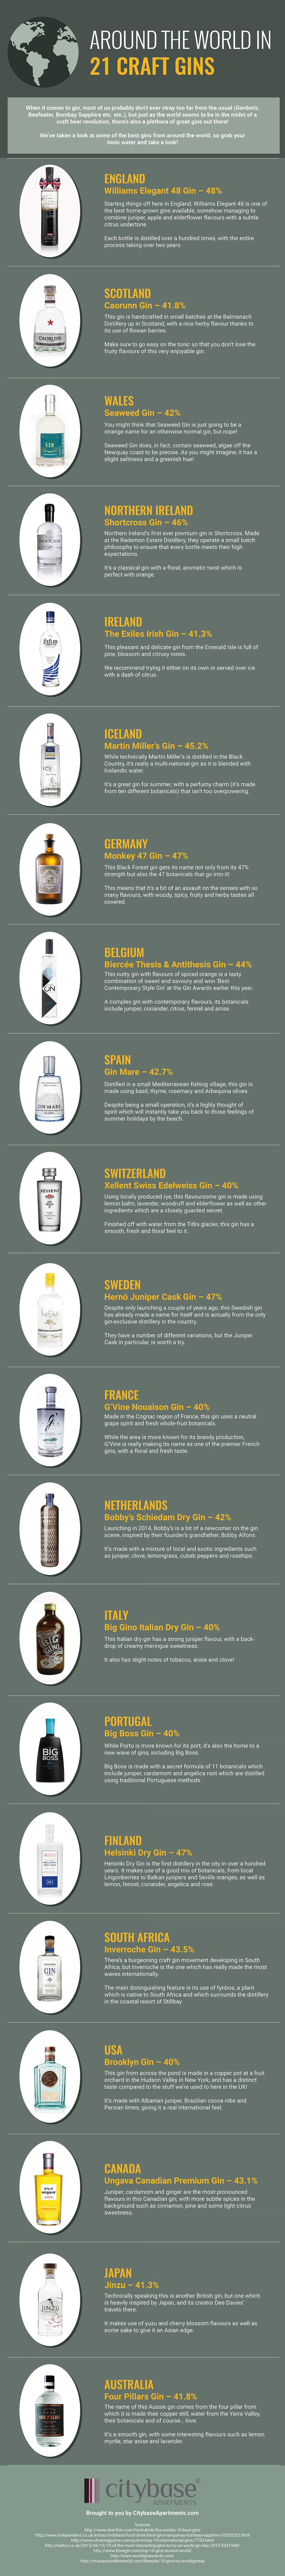 Around The World In 21 Craft Gins [Infographic] Infographic